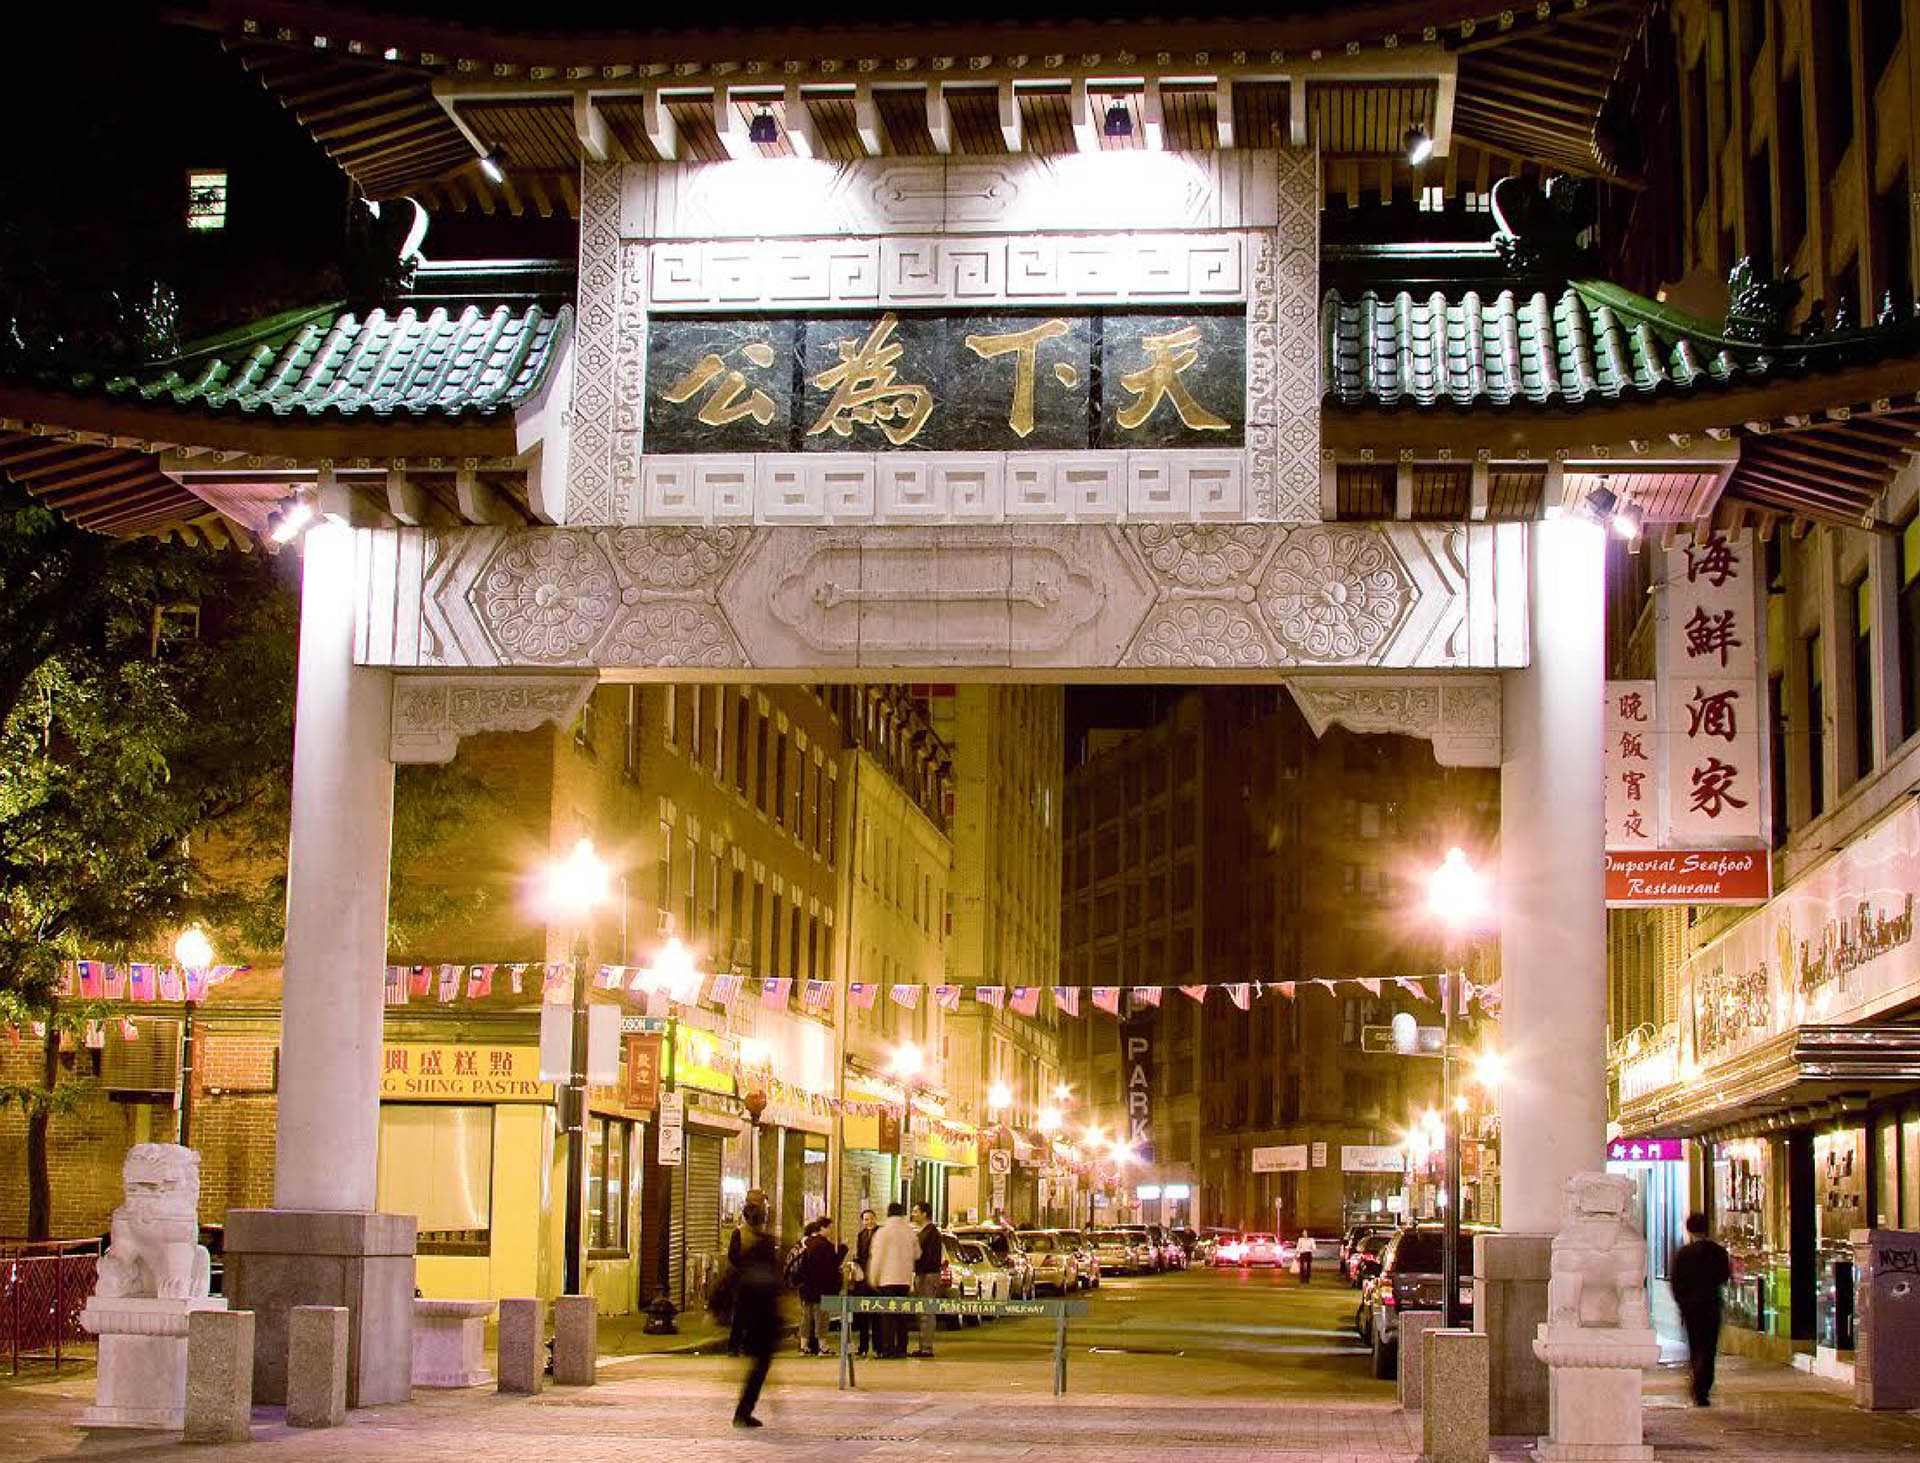 photo of the Chinatown's Gateway